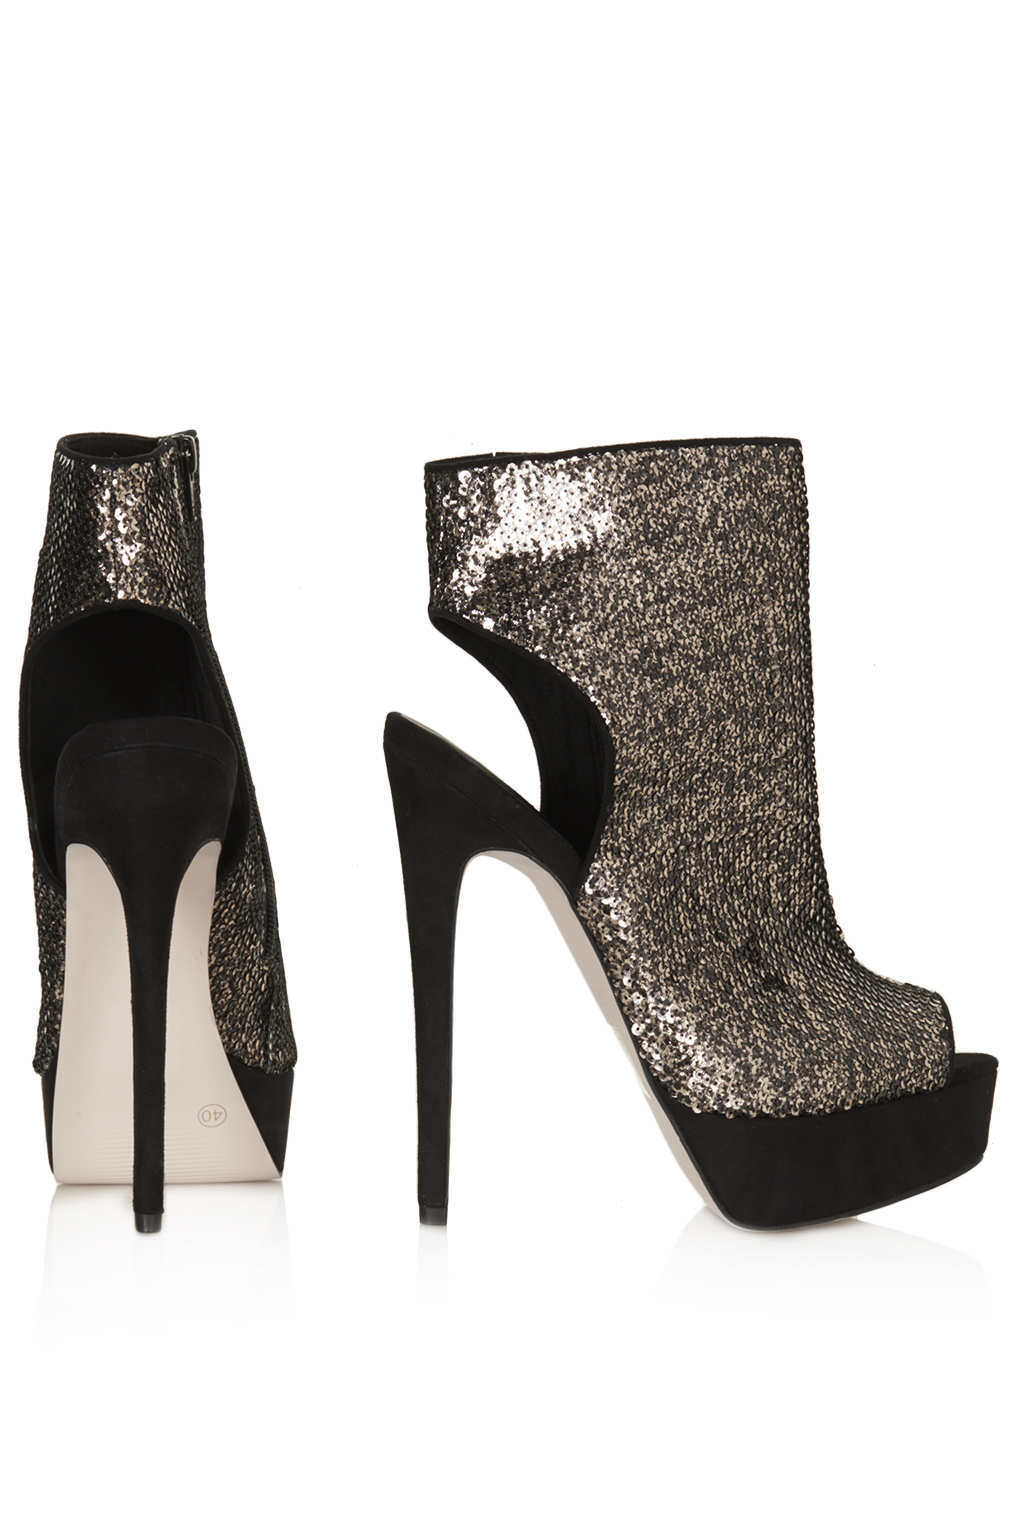 TOPSHOP Absinth Stiletto Cut Out Boots in Gold (Metallic)